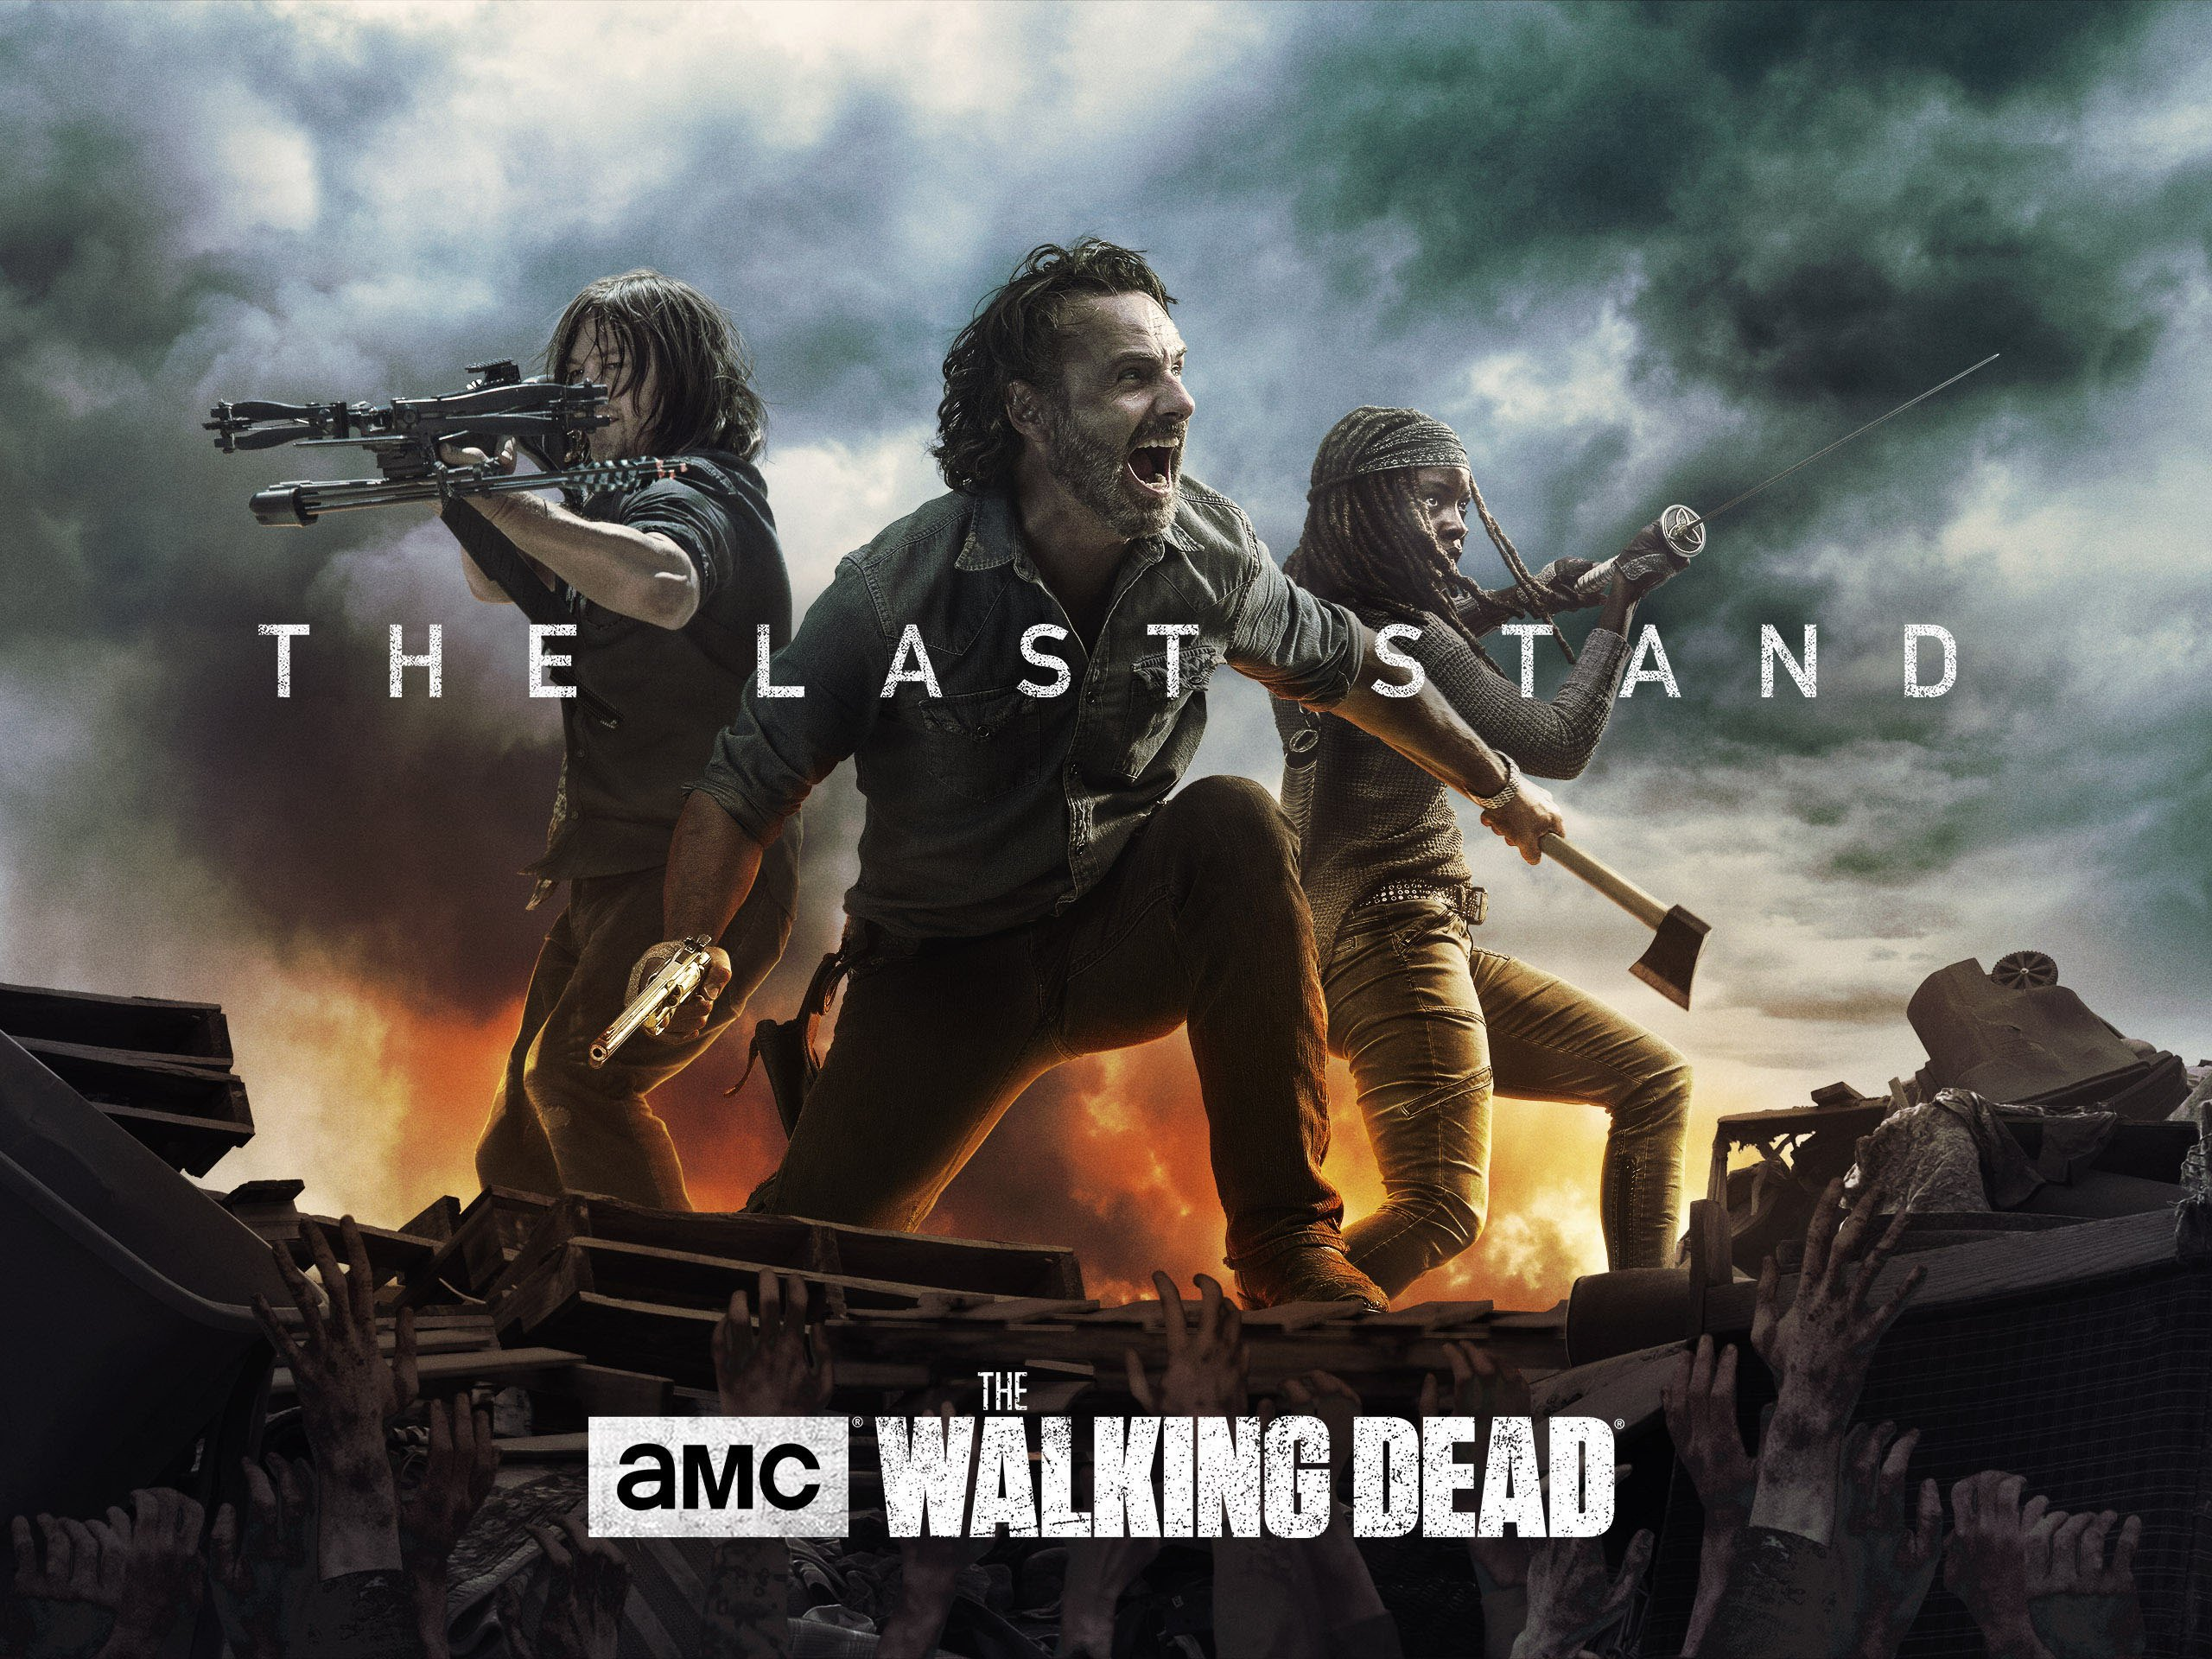 Amazon.com: Watch The Walking Dead, Season 8 | Prime Video